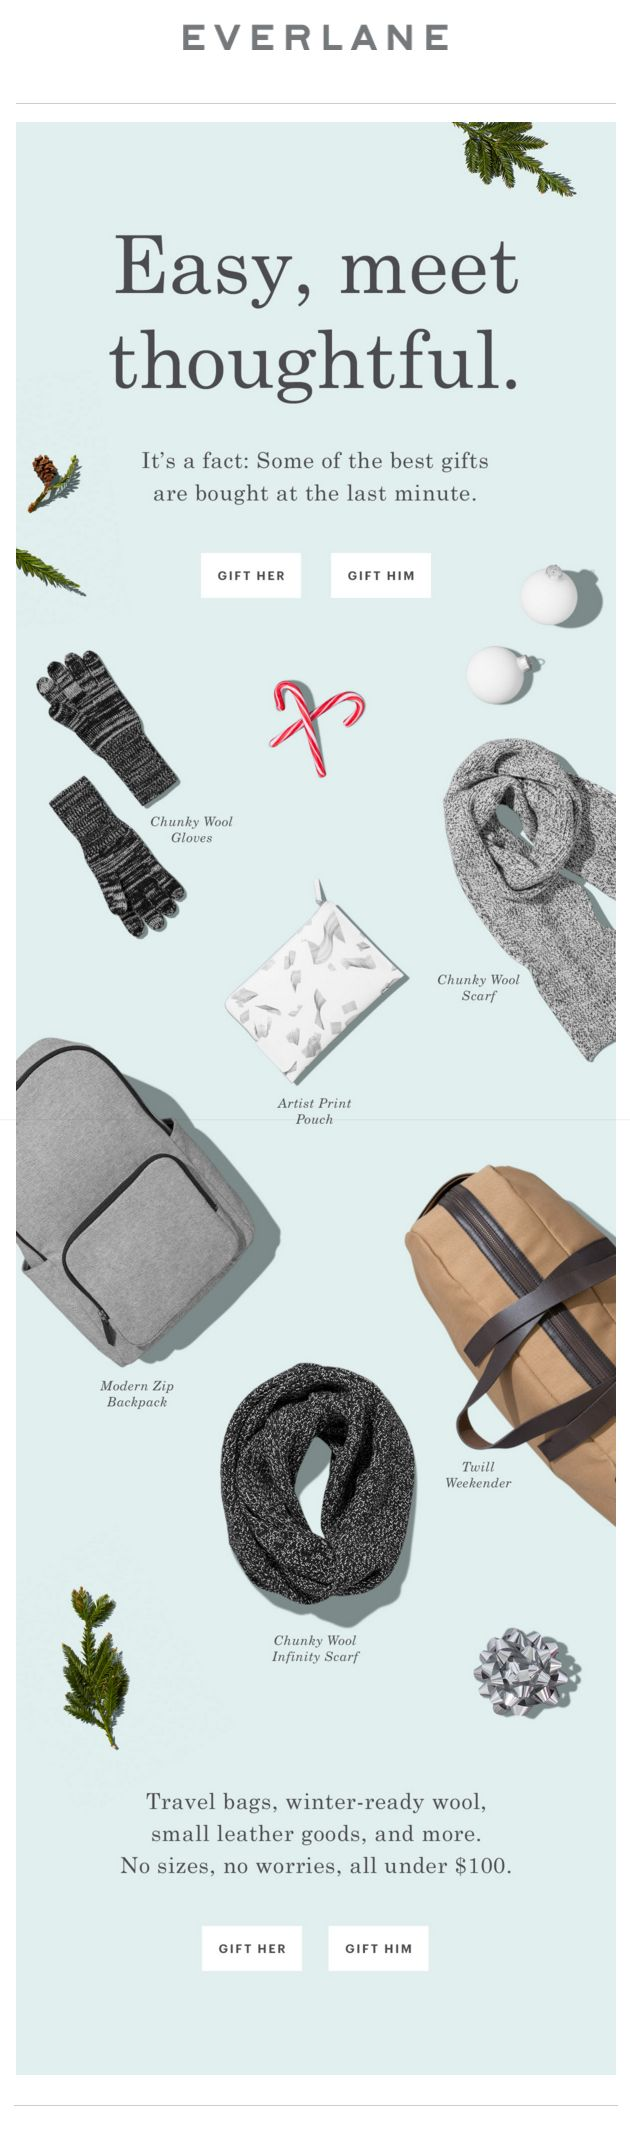 Everlane Holiday Gifts email. SL: Our Easiest Gifts. Under $100. …